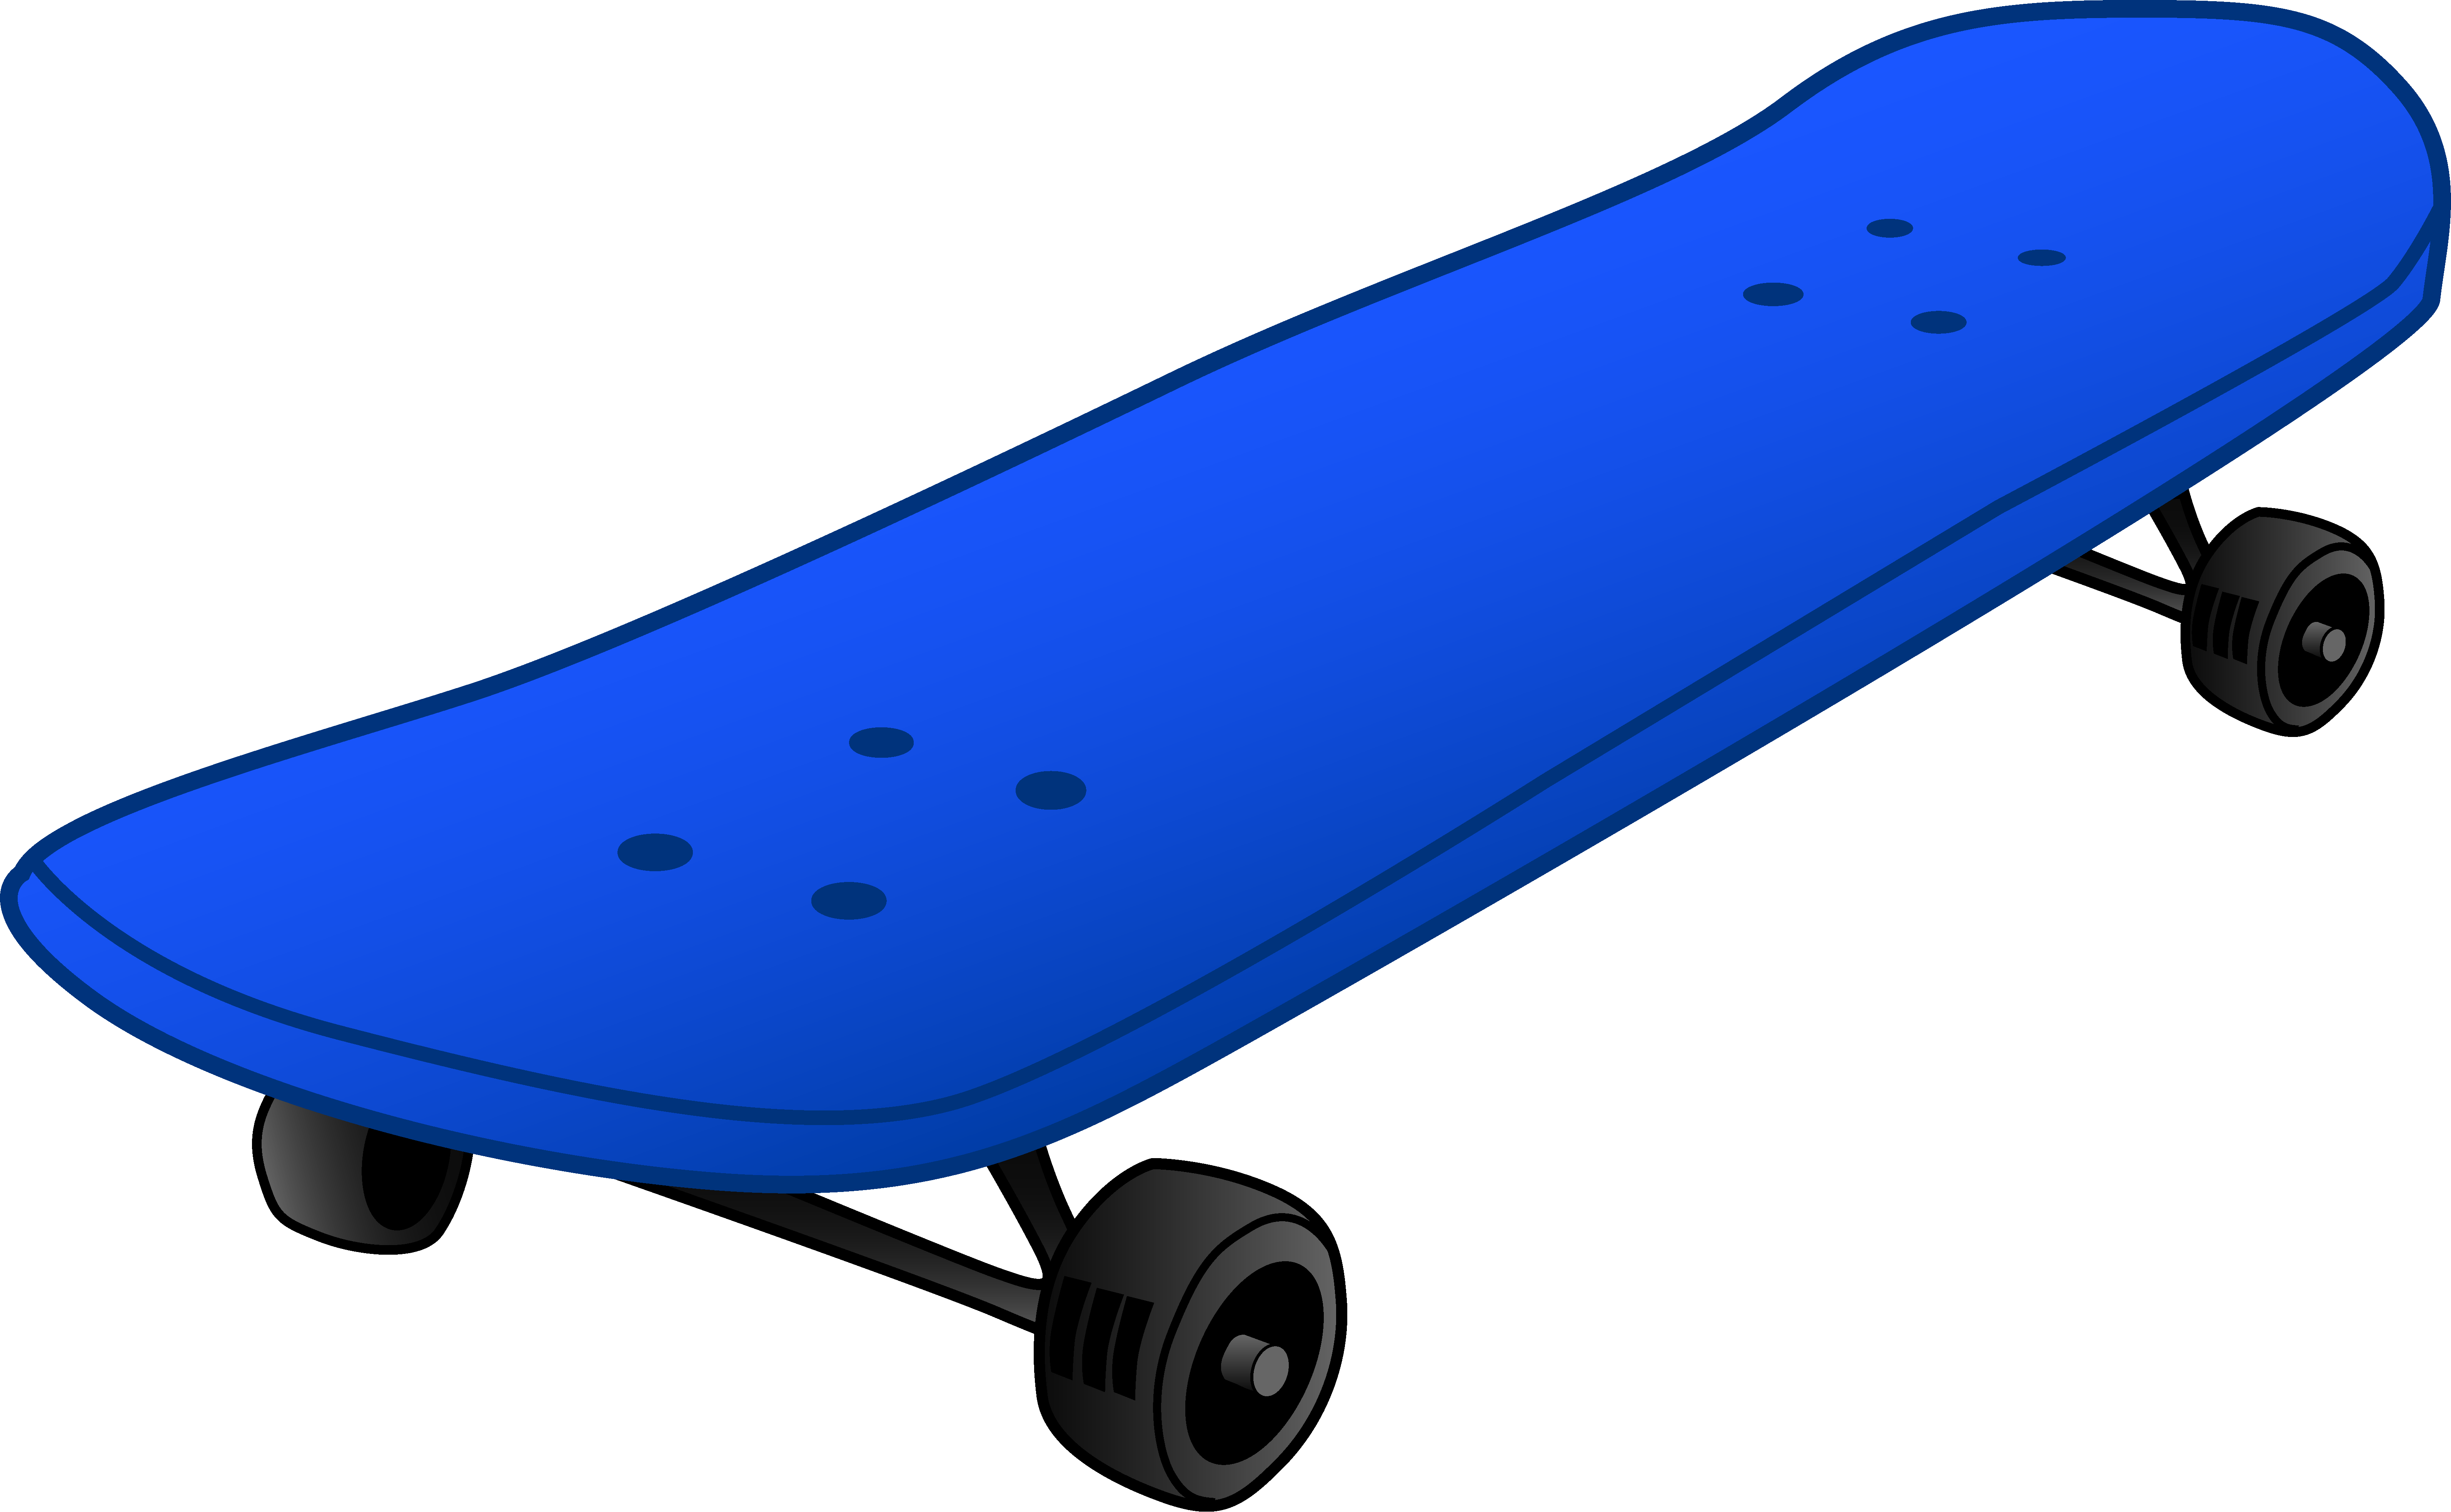 Skateboard clipart images image transparent library Free Skateboarding Cliparts, Download Free Clip Art, Free ... image transparent library